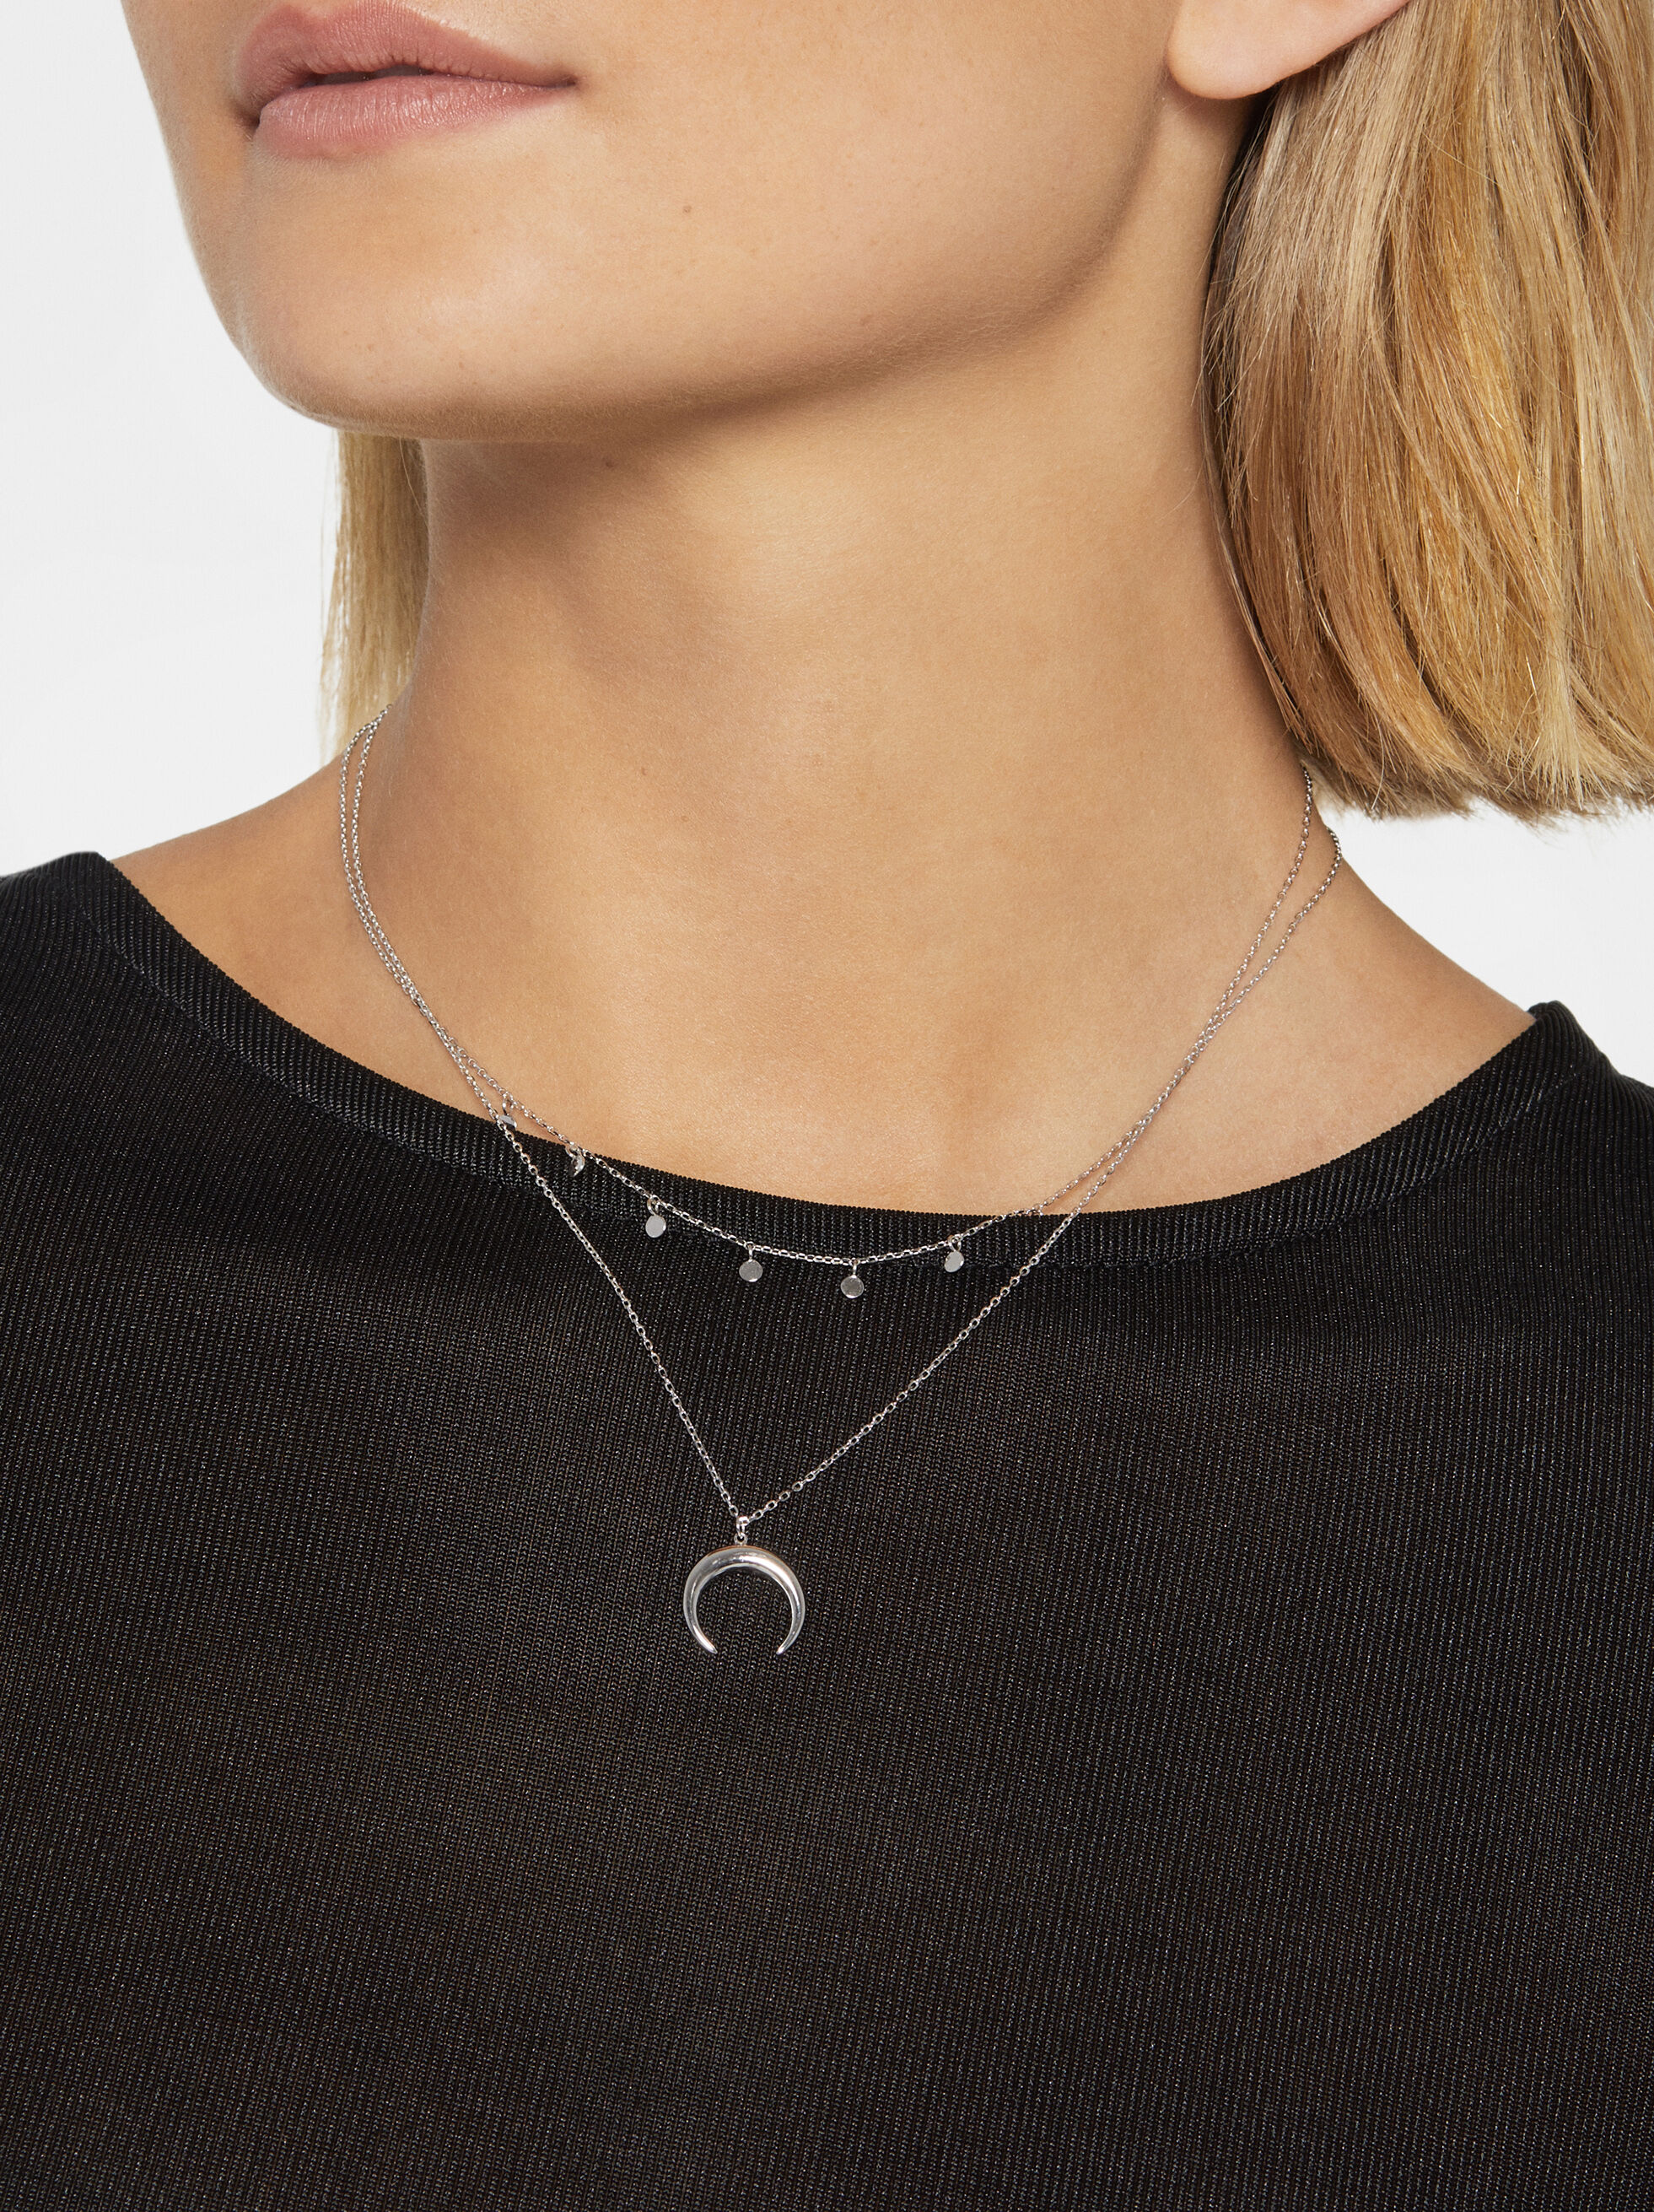 925 Silver Necklace With Pendant, Silver, hi-res